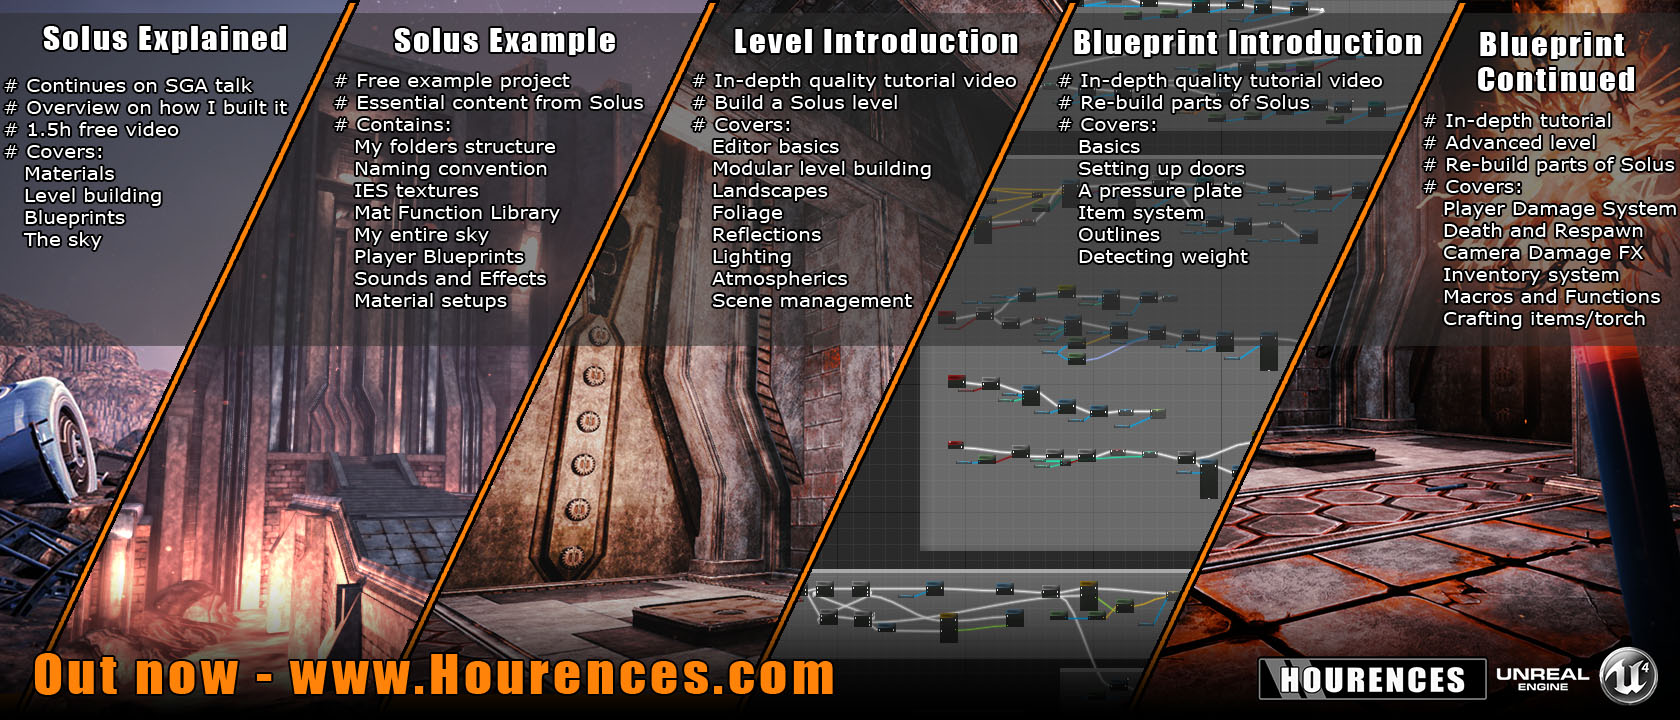 Hourences com - Unreal Engine and Level Design tutorials - Page 2